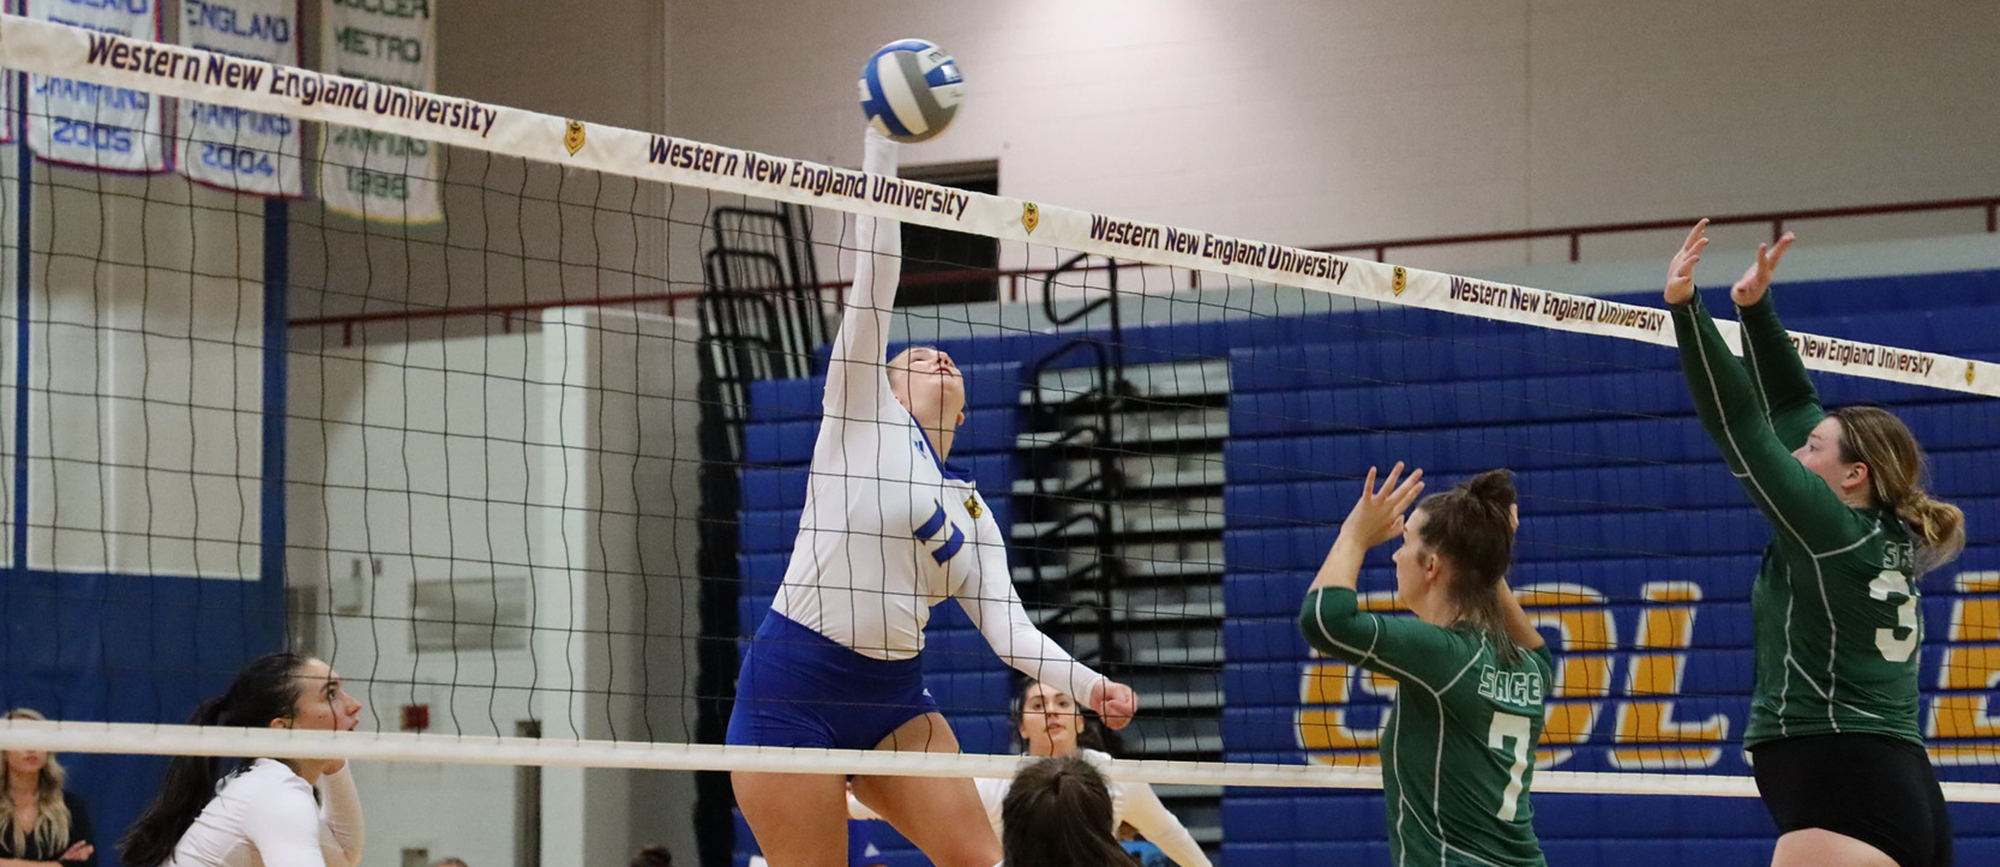 Cassie Holmes compiled a team-high 28 kills during Western New England's split with Worcester State and Wheaton on Saturday. (Photo by Kieran Lombard)